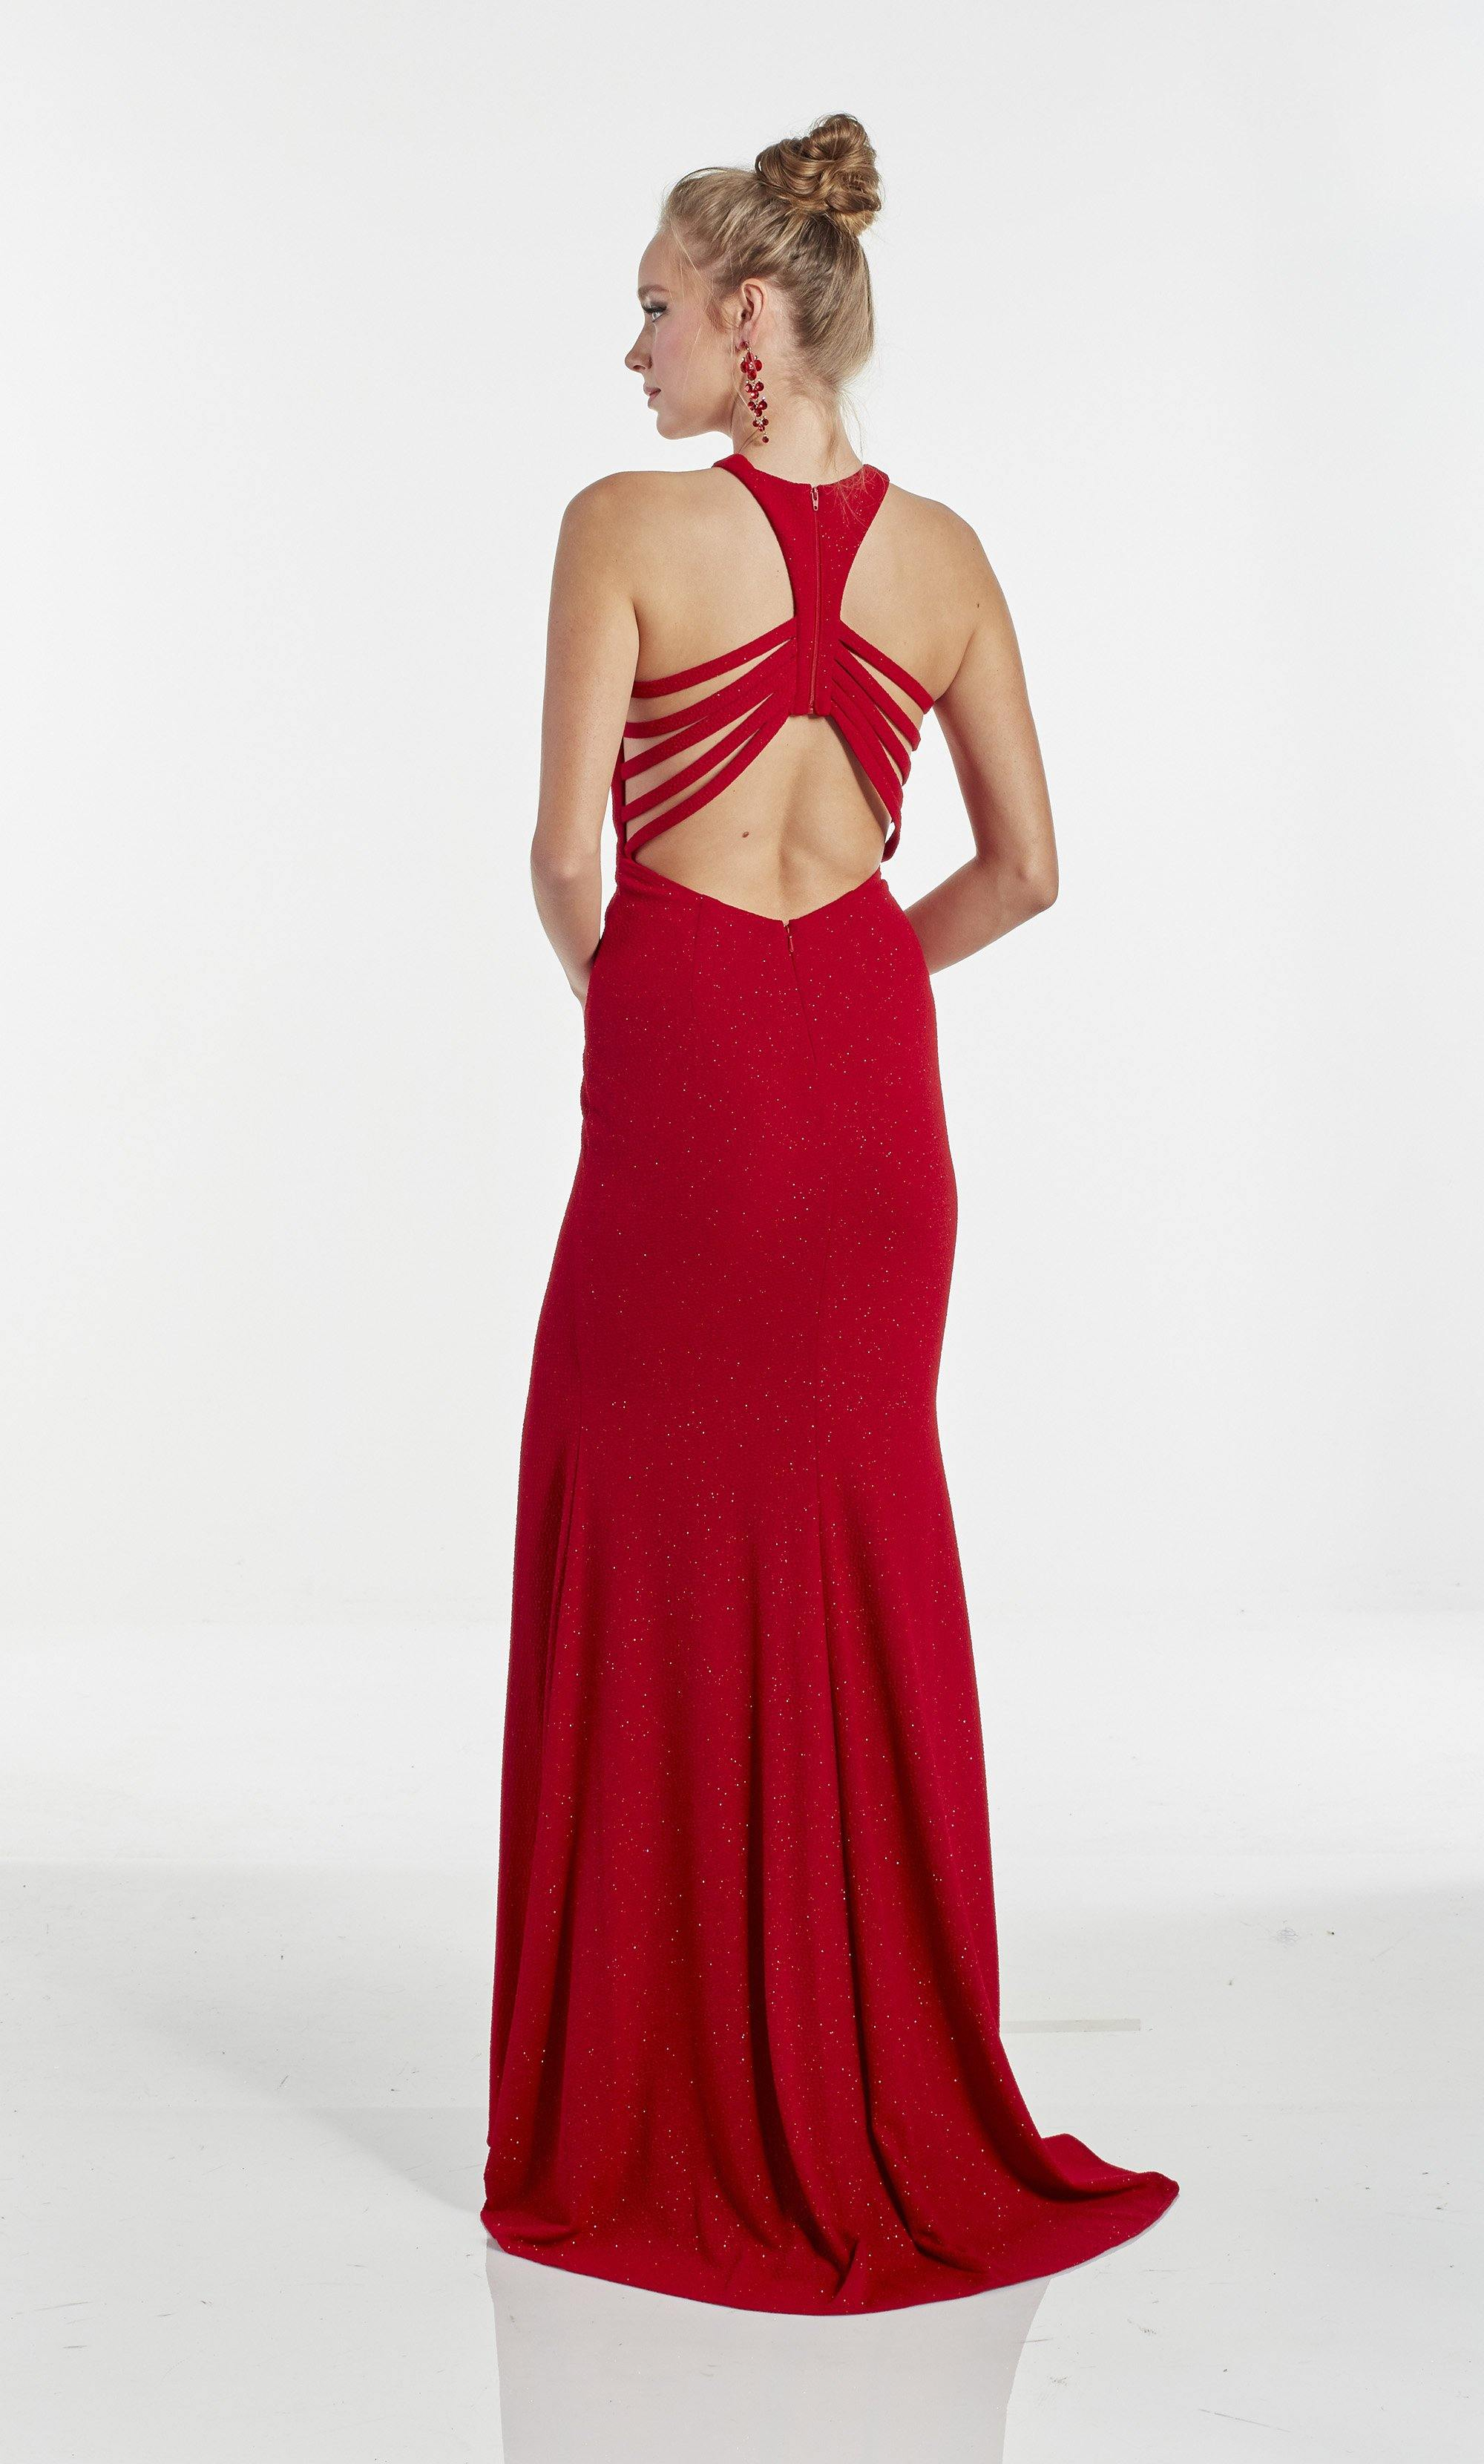 Red glitter jersey halter prom dress with a front slit